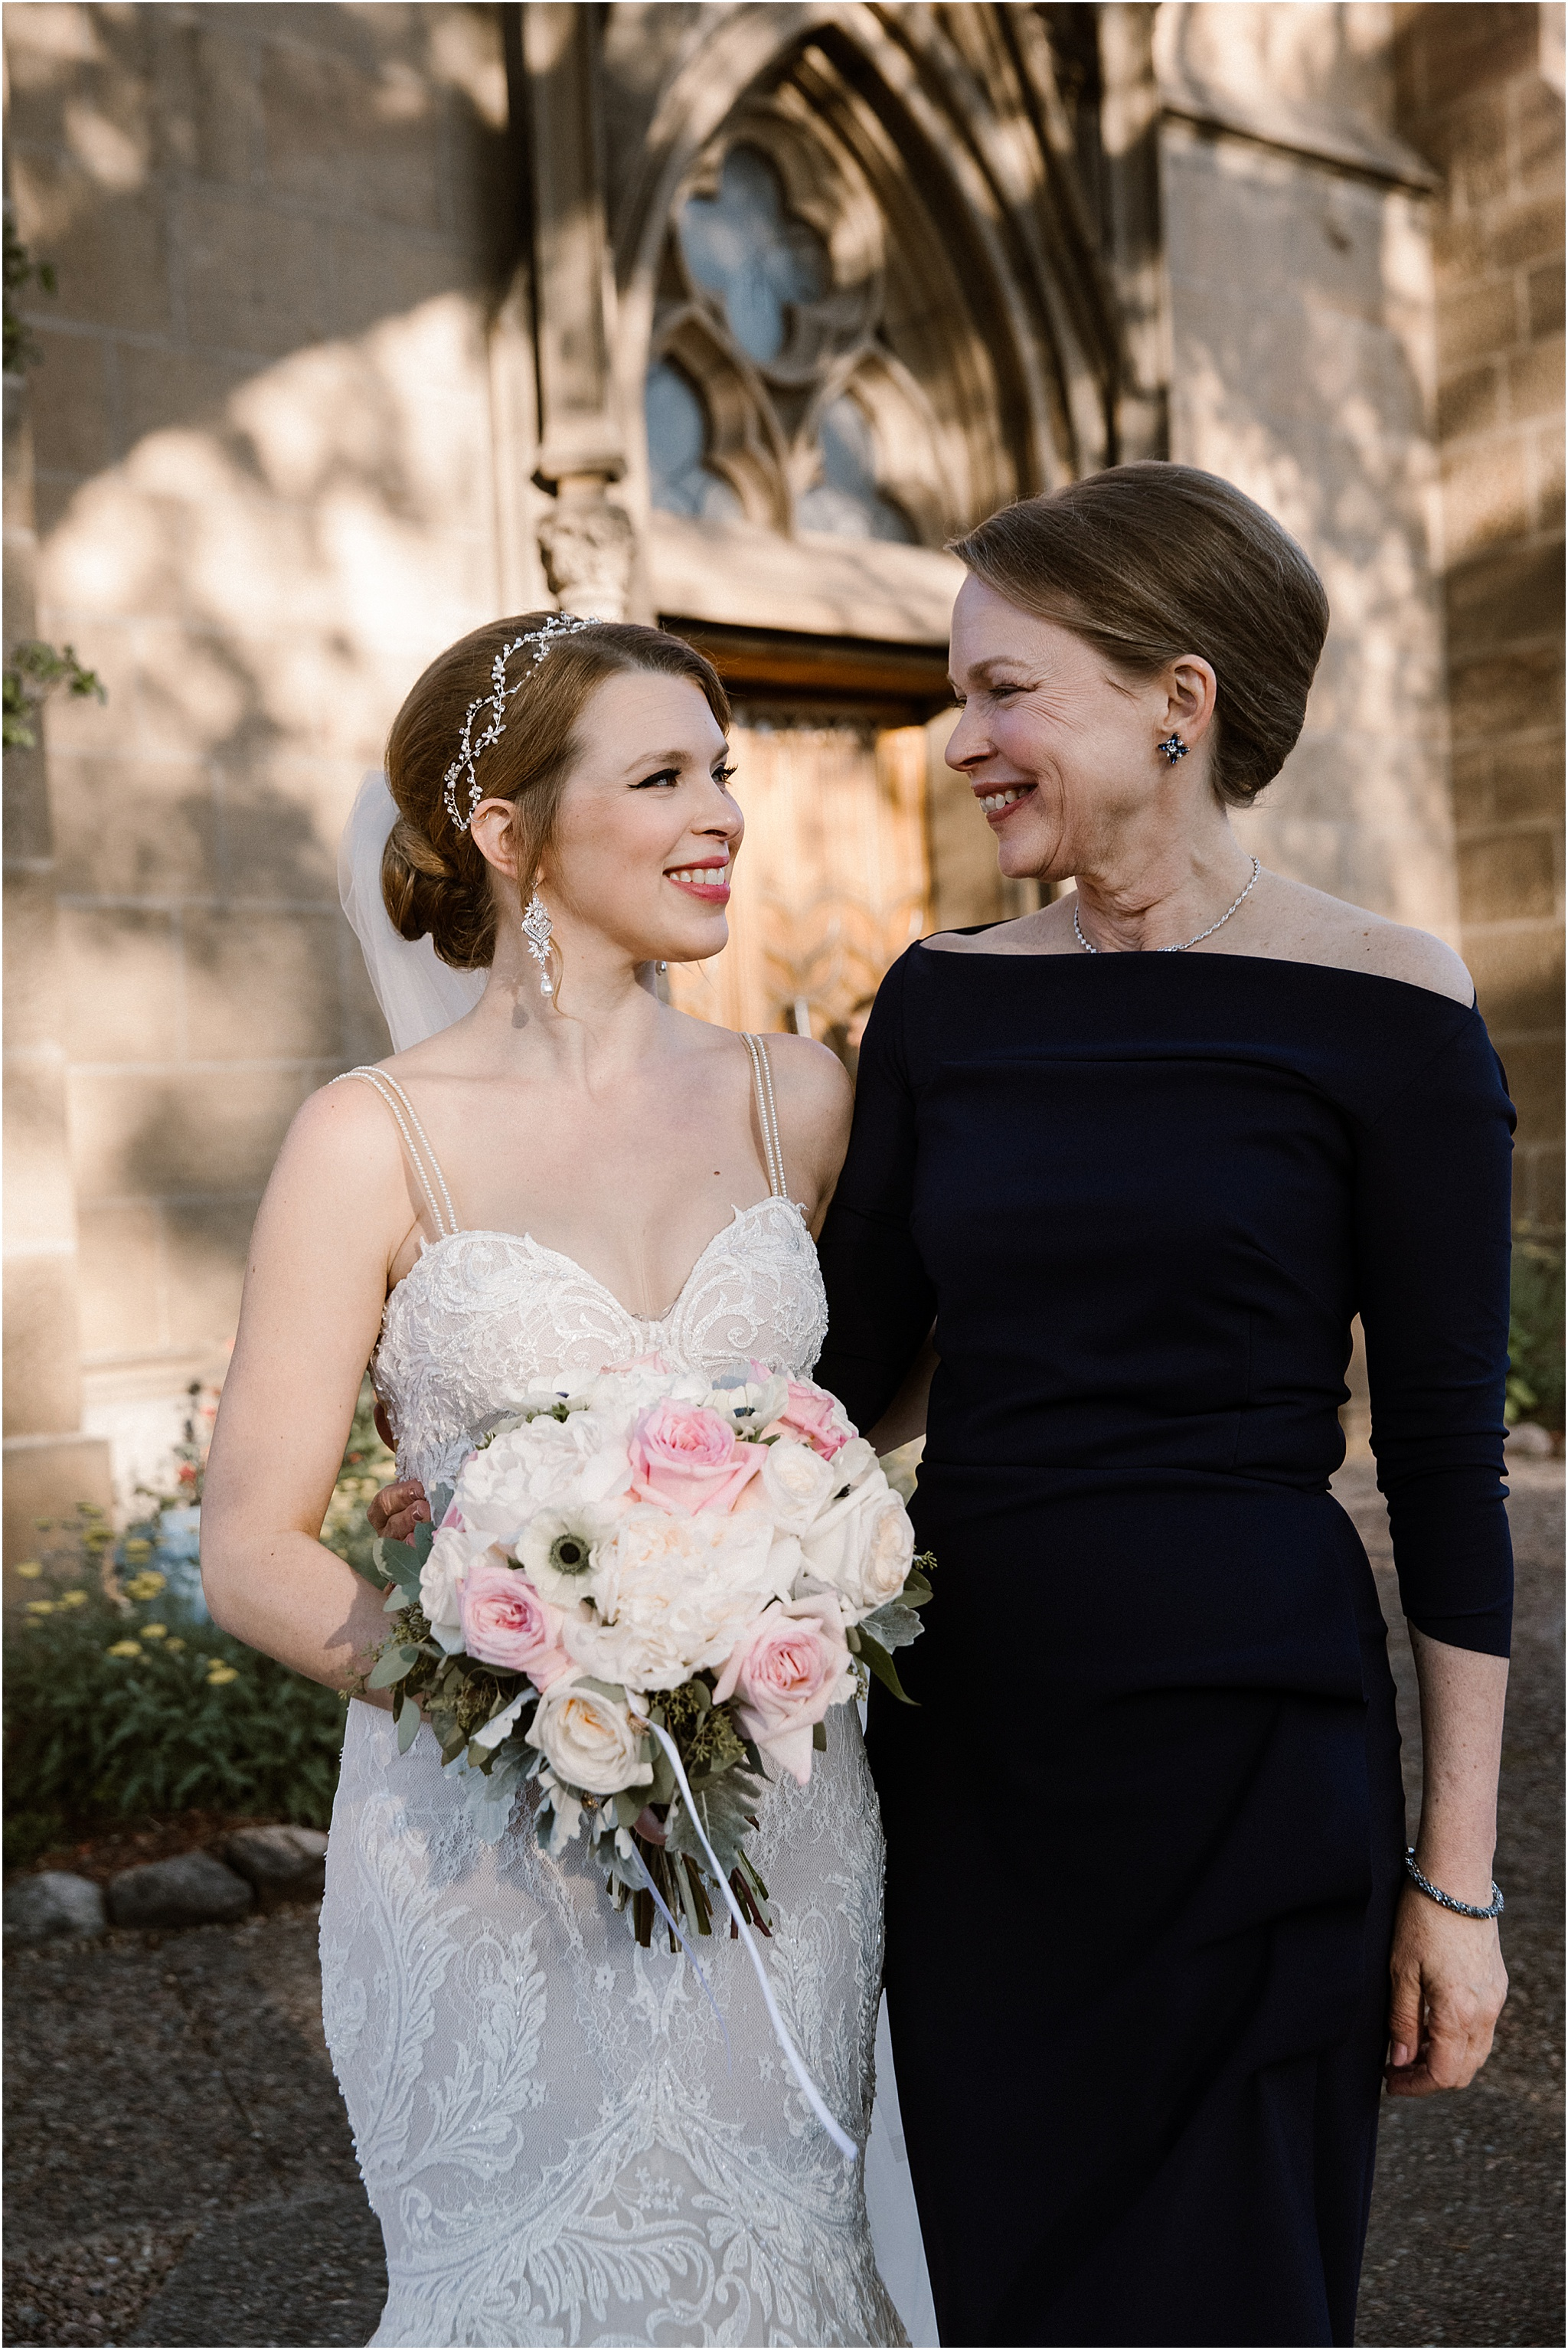 BLUE ROSE PHOTOGRAPHY SANTA FE WEDDING_31